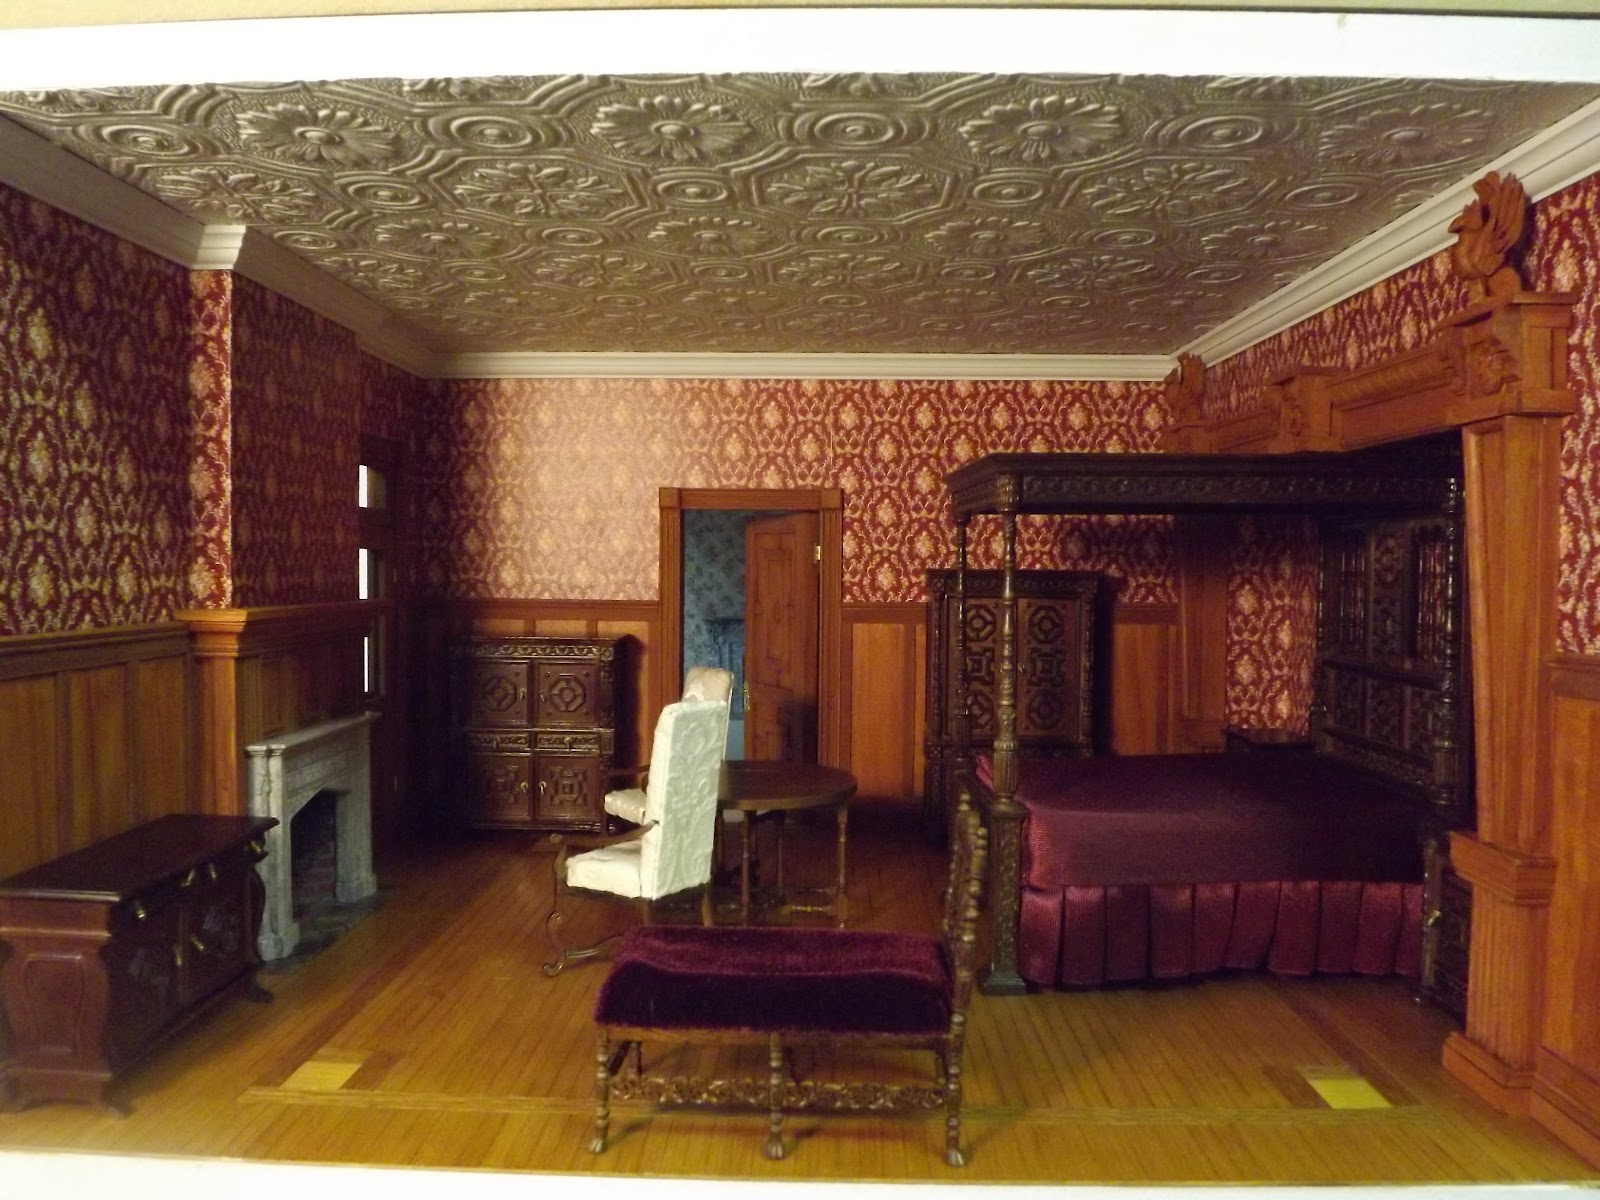 Late Victorian English Manor Dollhouse: 1/12 Miniature ...